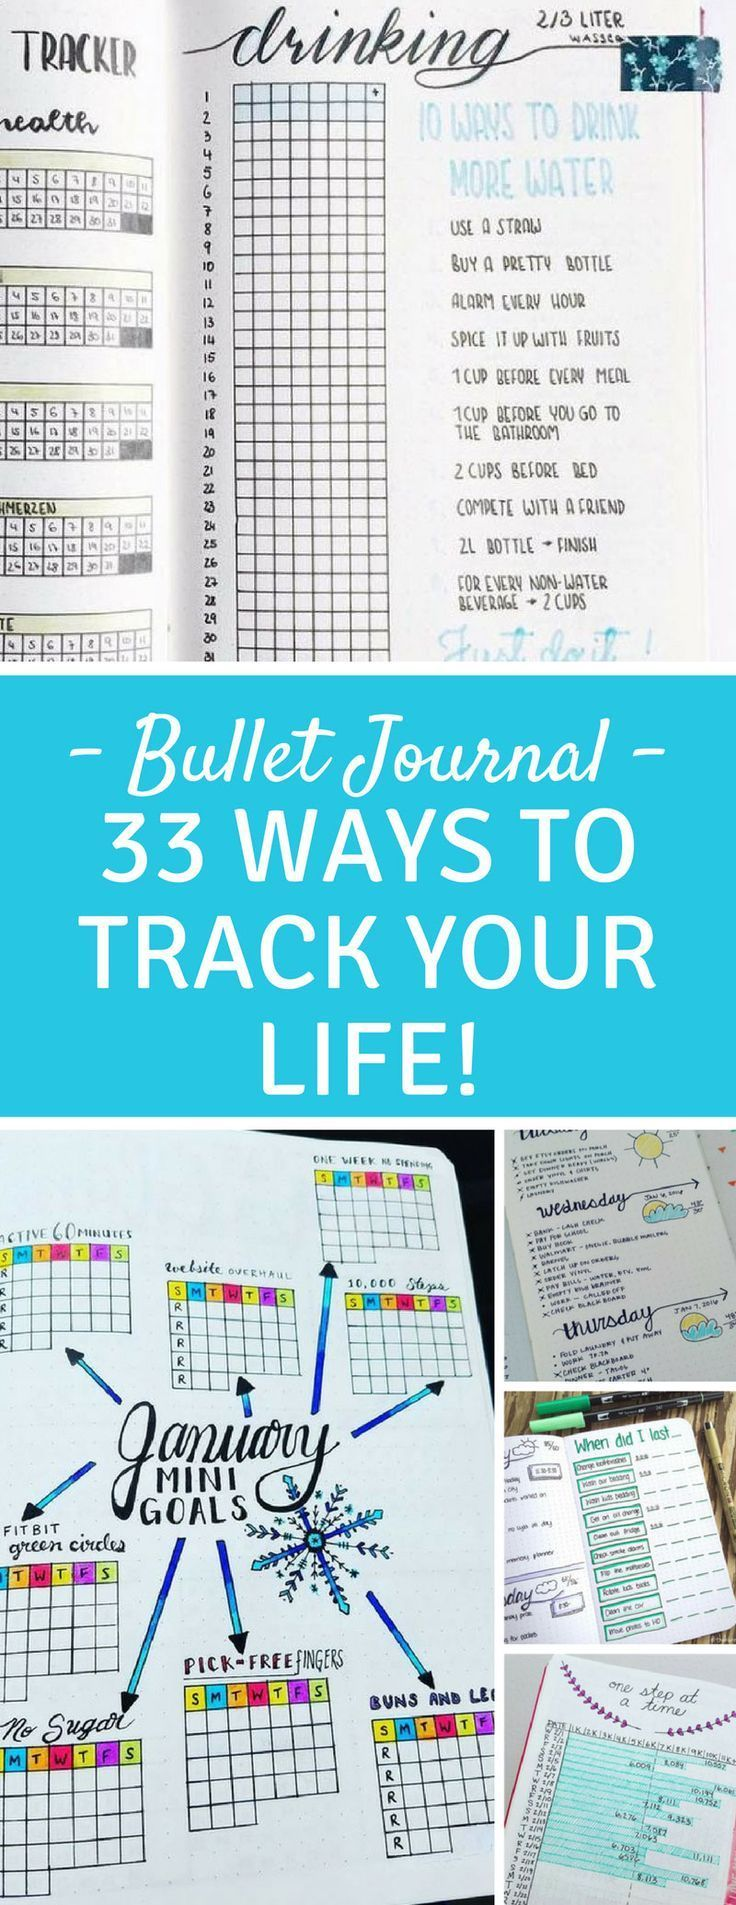 190+ Bullet Journal Ideas 2020 {The ULTIMATE List of Trackers and Collections} #watertrackerbulletjournal